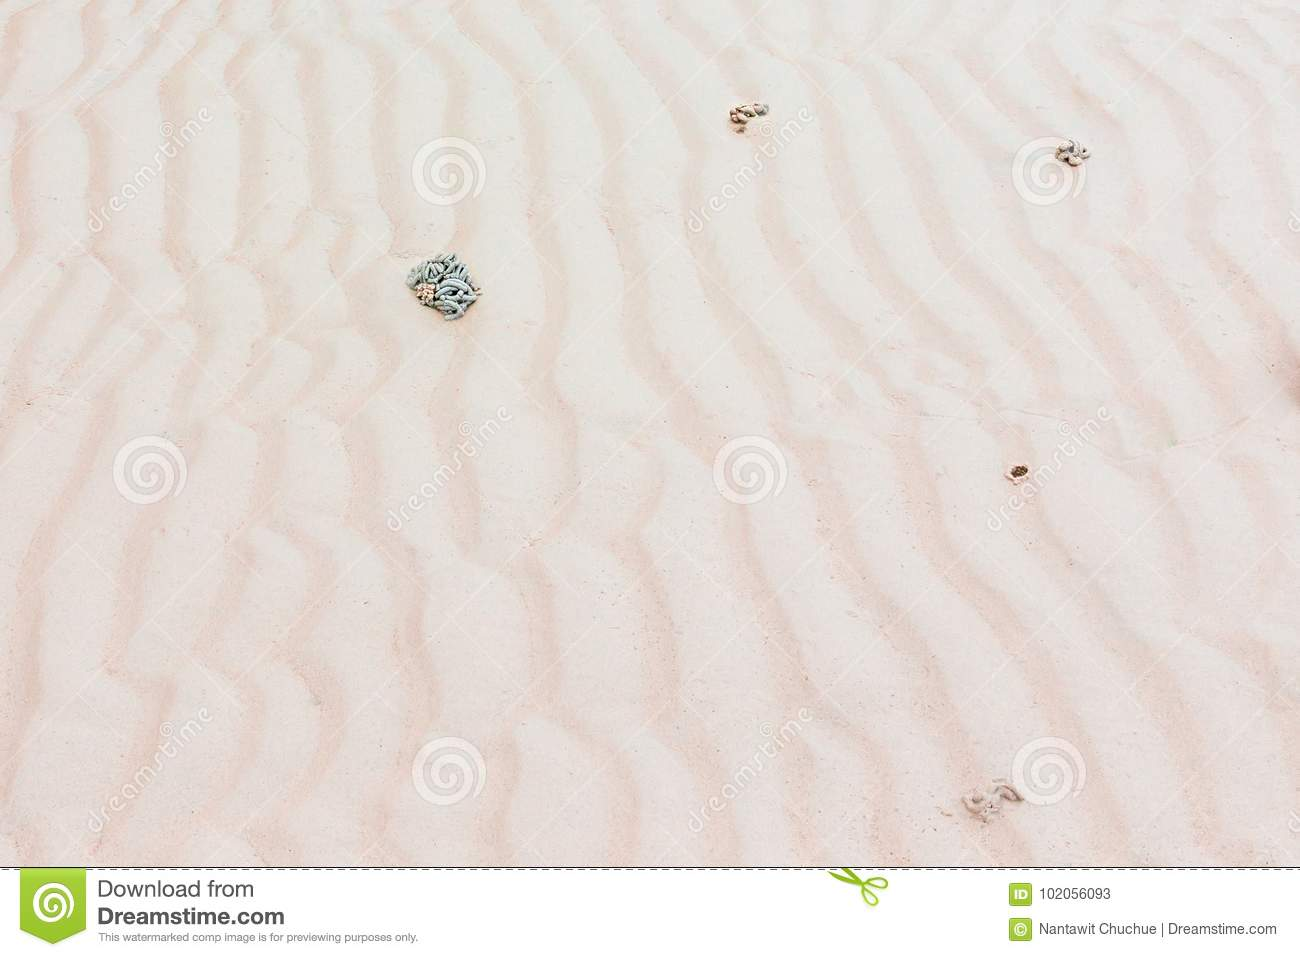 Traces The Beach Waves Have Stool Of Sea Worms Stock Image